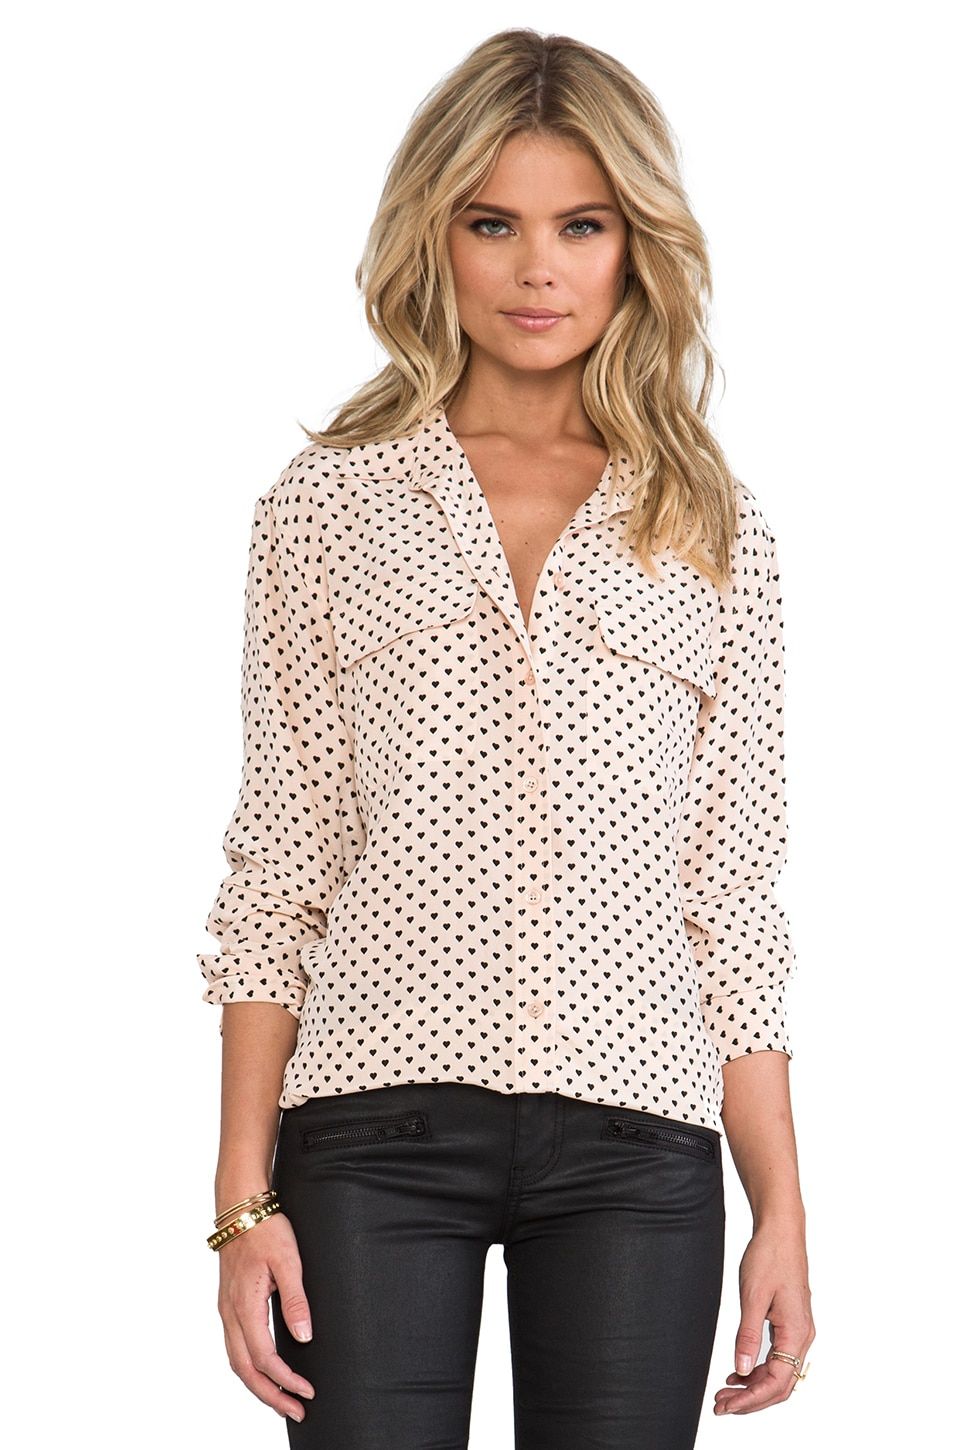 Equipment Signature Angelica Hearts Blouse in Nude